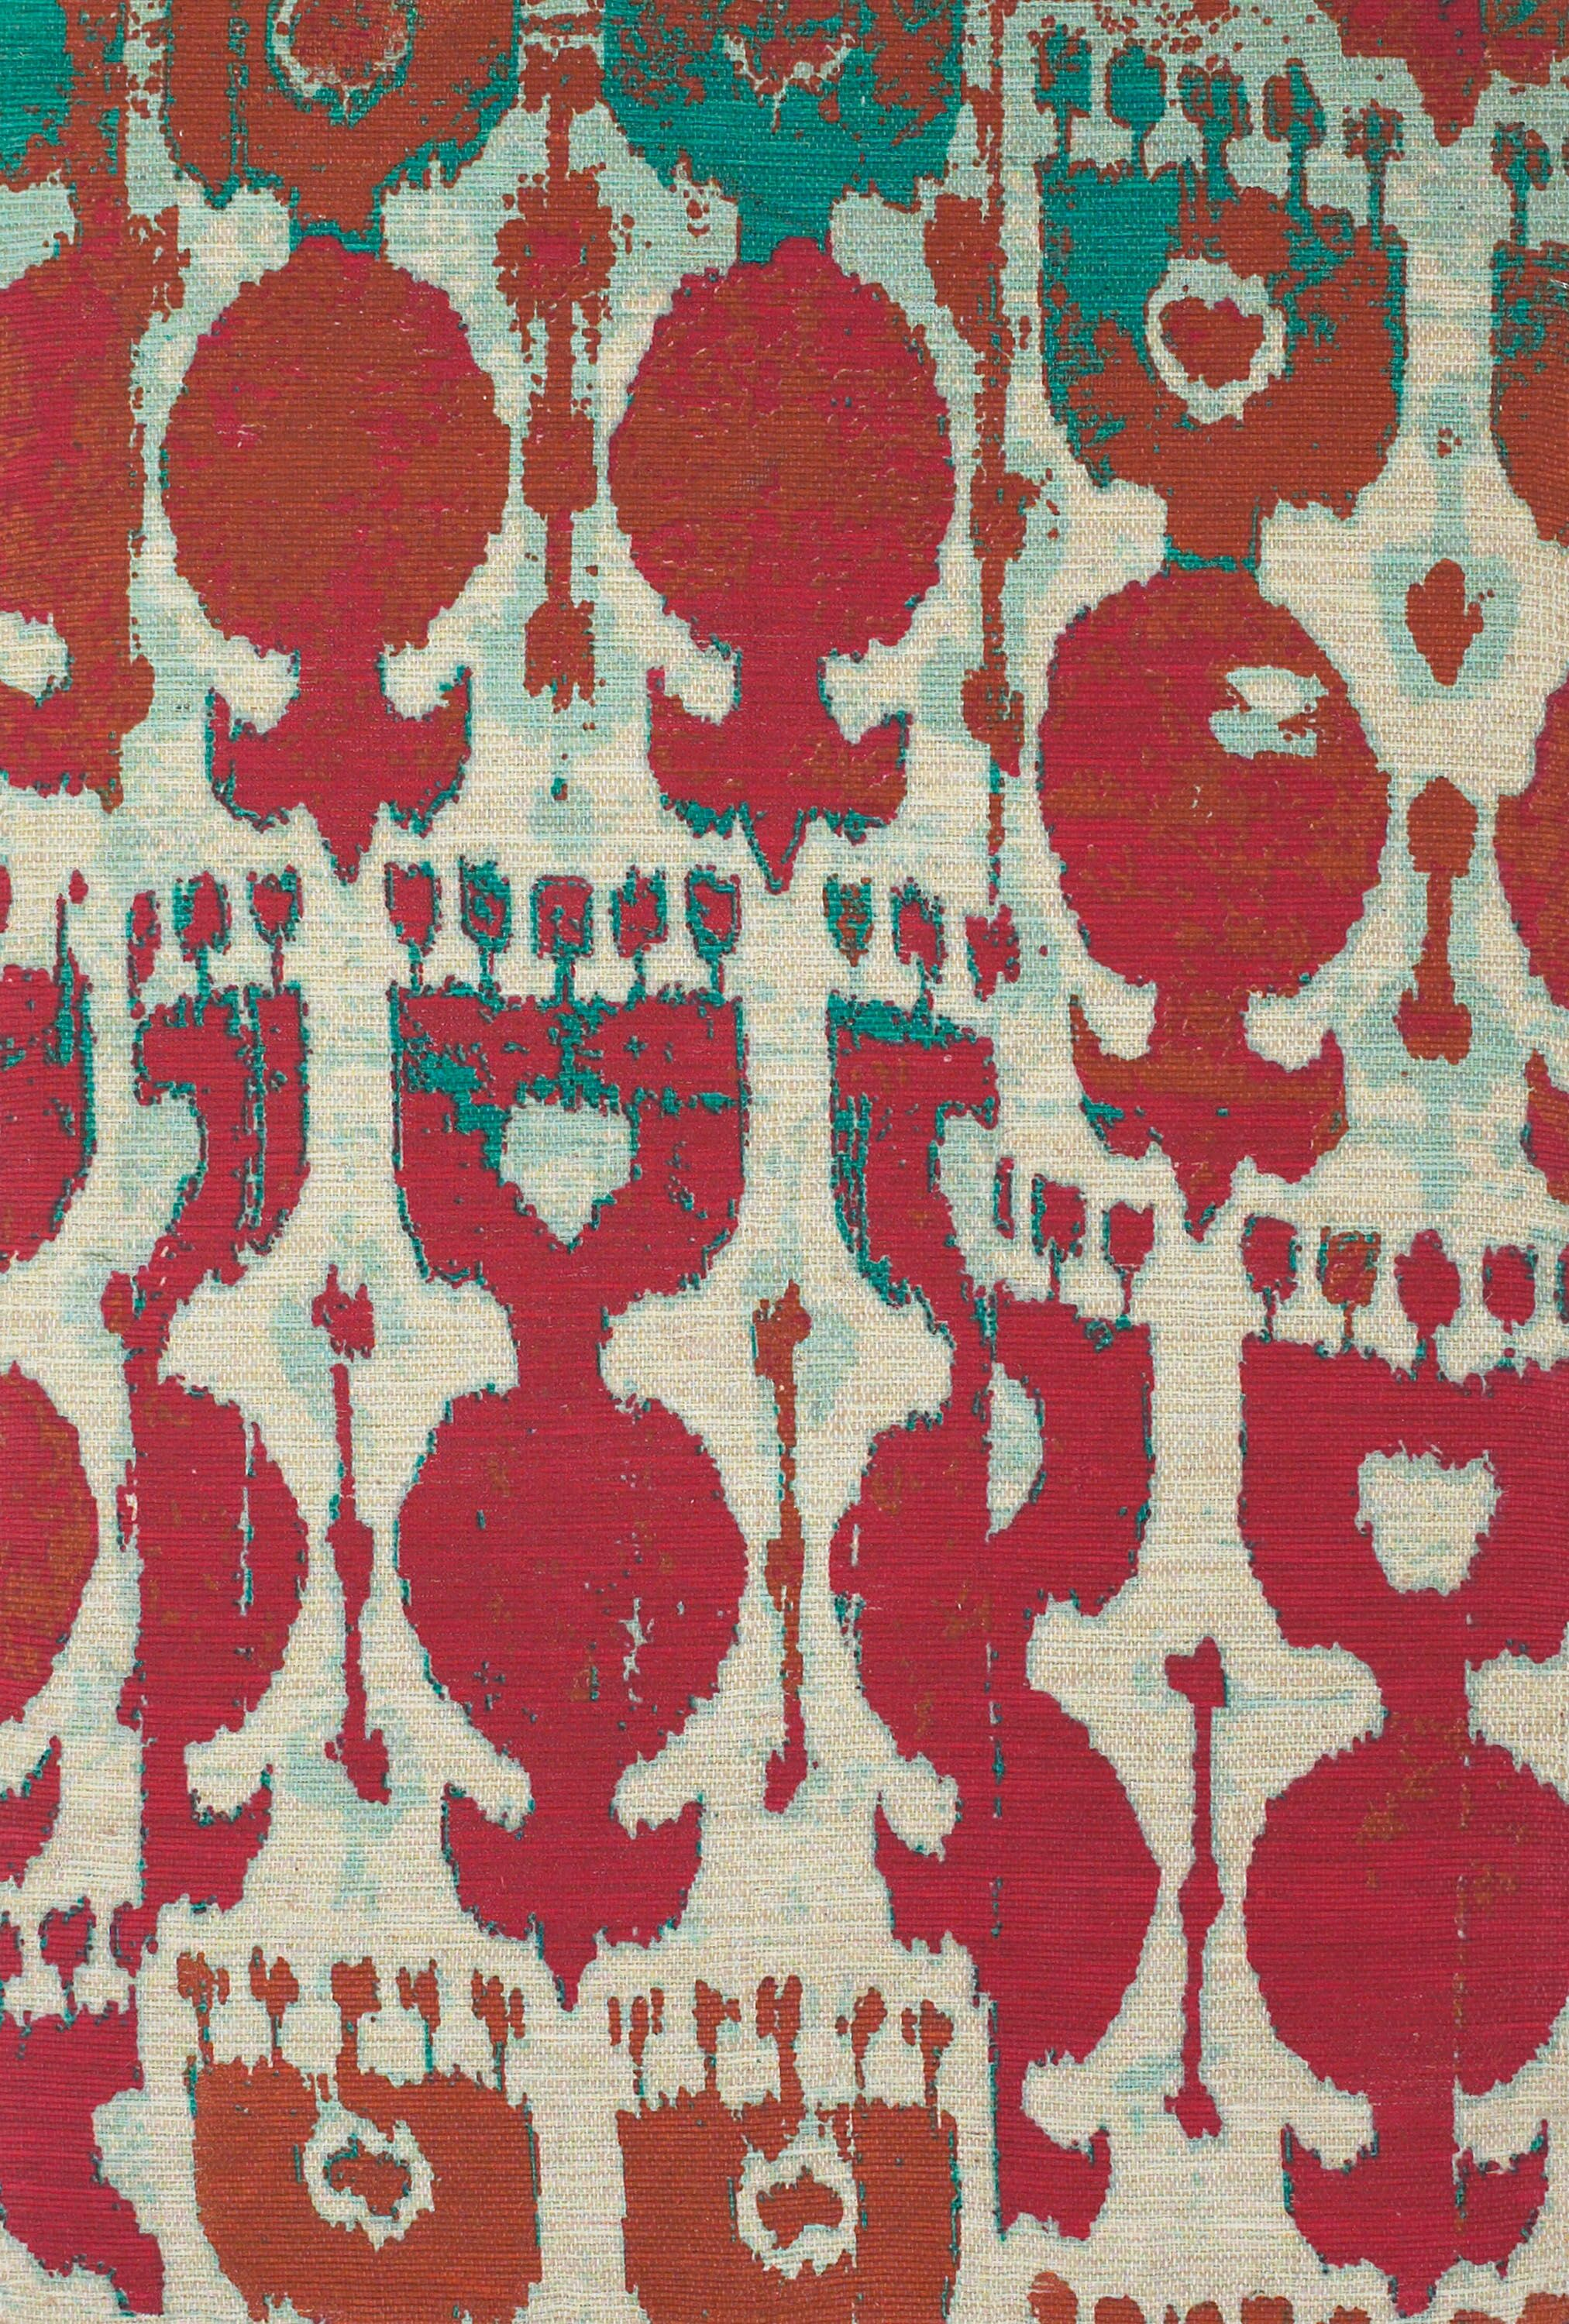 Abram Hand-Loomed Red/Teal Area Rug Rug Size: Rectangle 8' x 11'